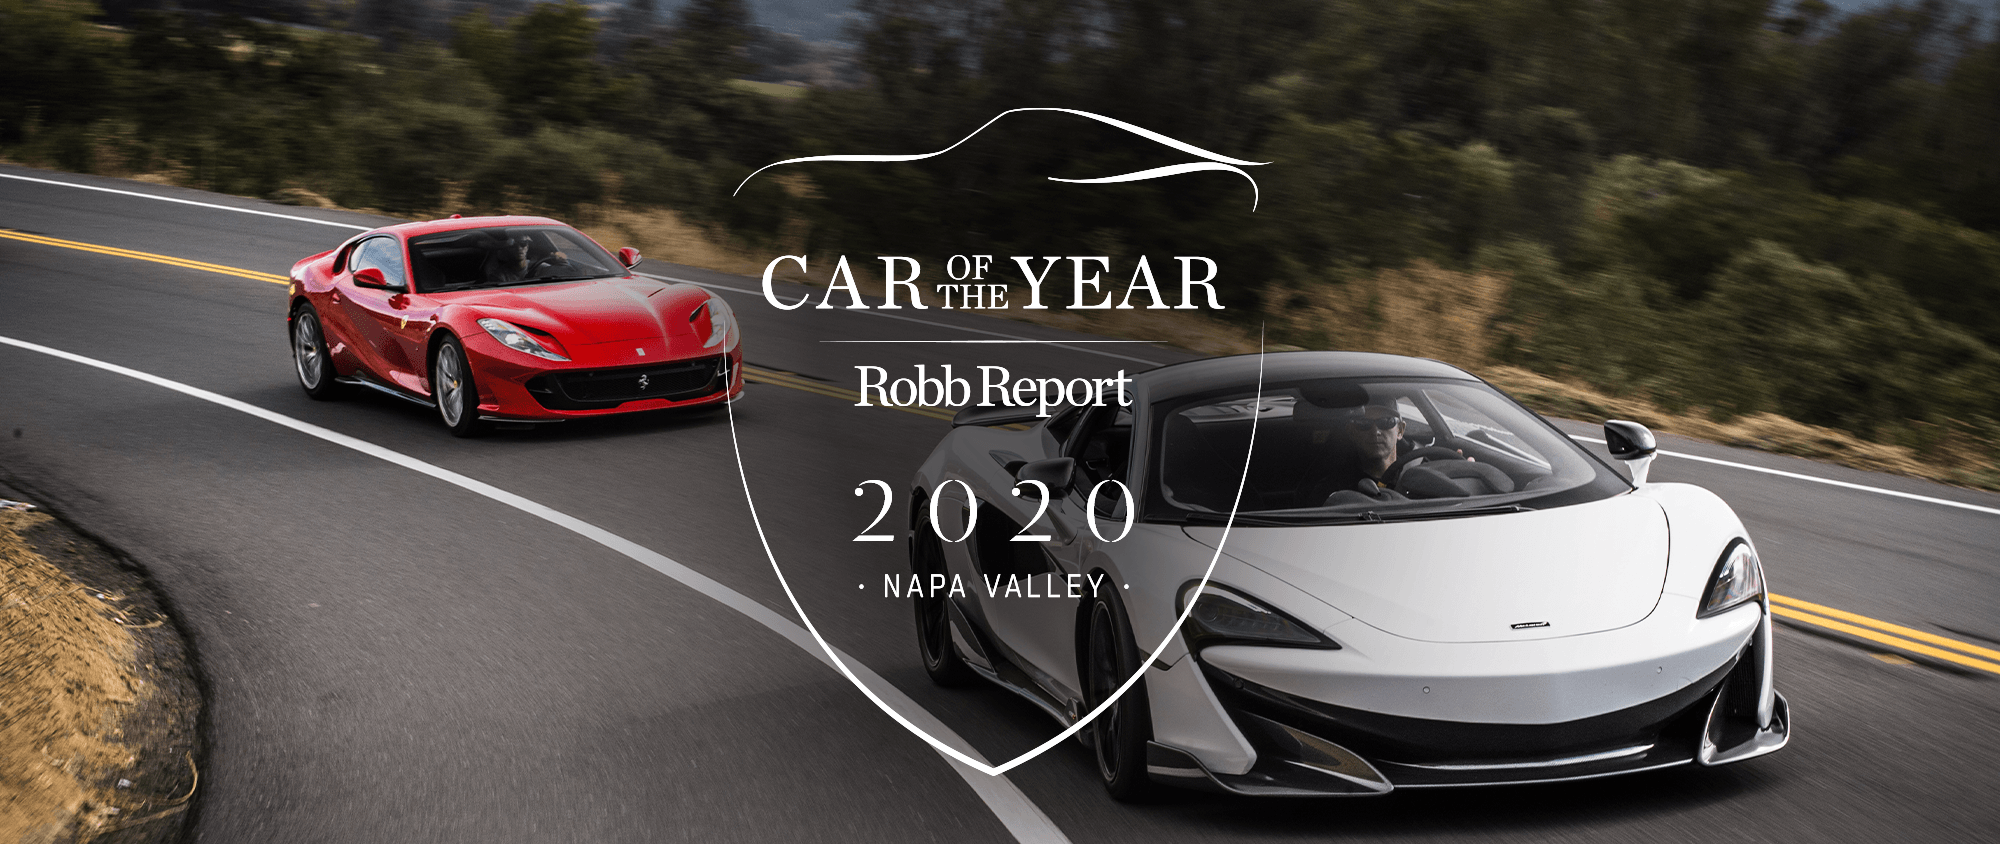 Robb Report Car of the Year Napa Valley